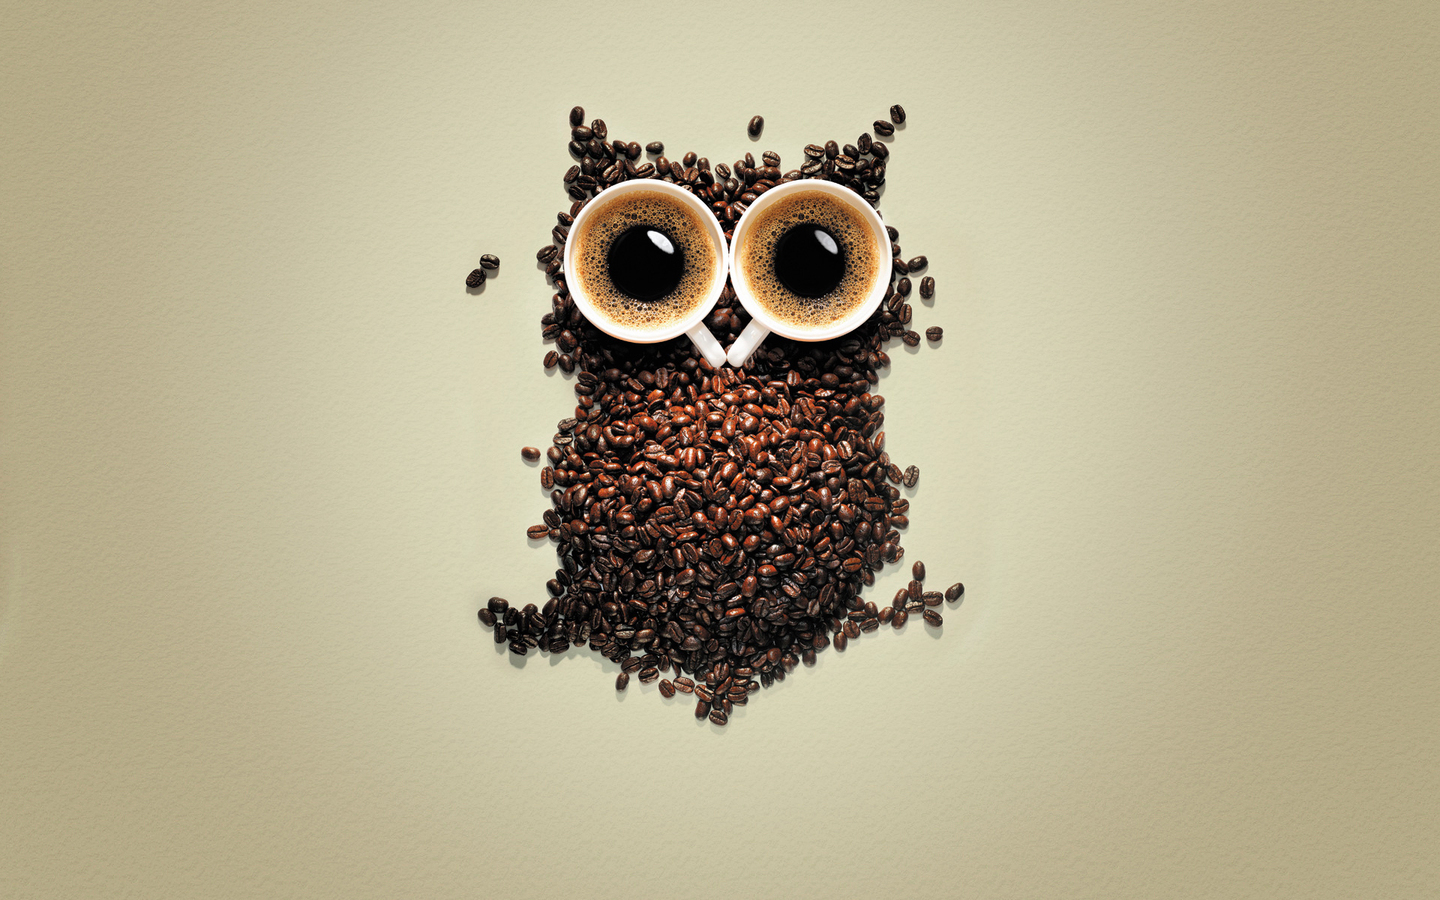 14494 download wallpaper Funny, Animals, Art, Owl, Coffee screensavers and pictures for free